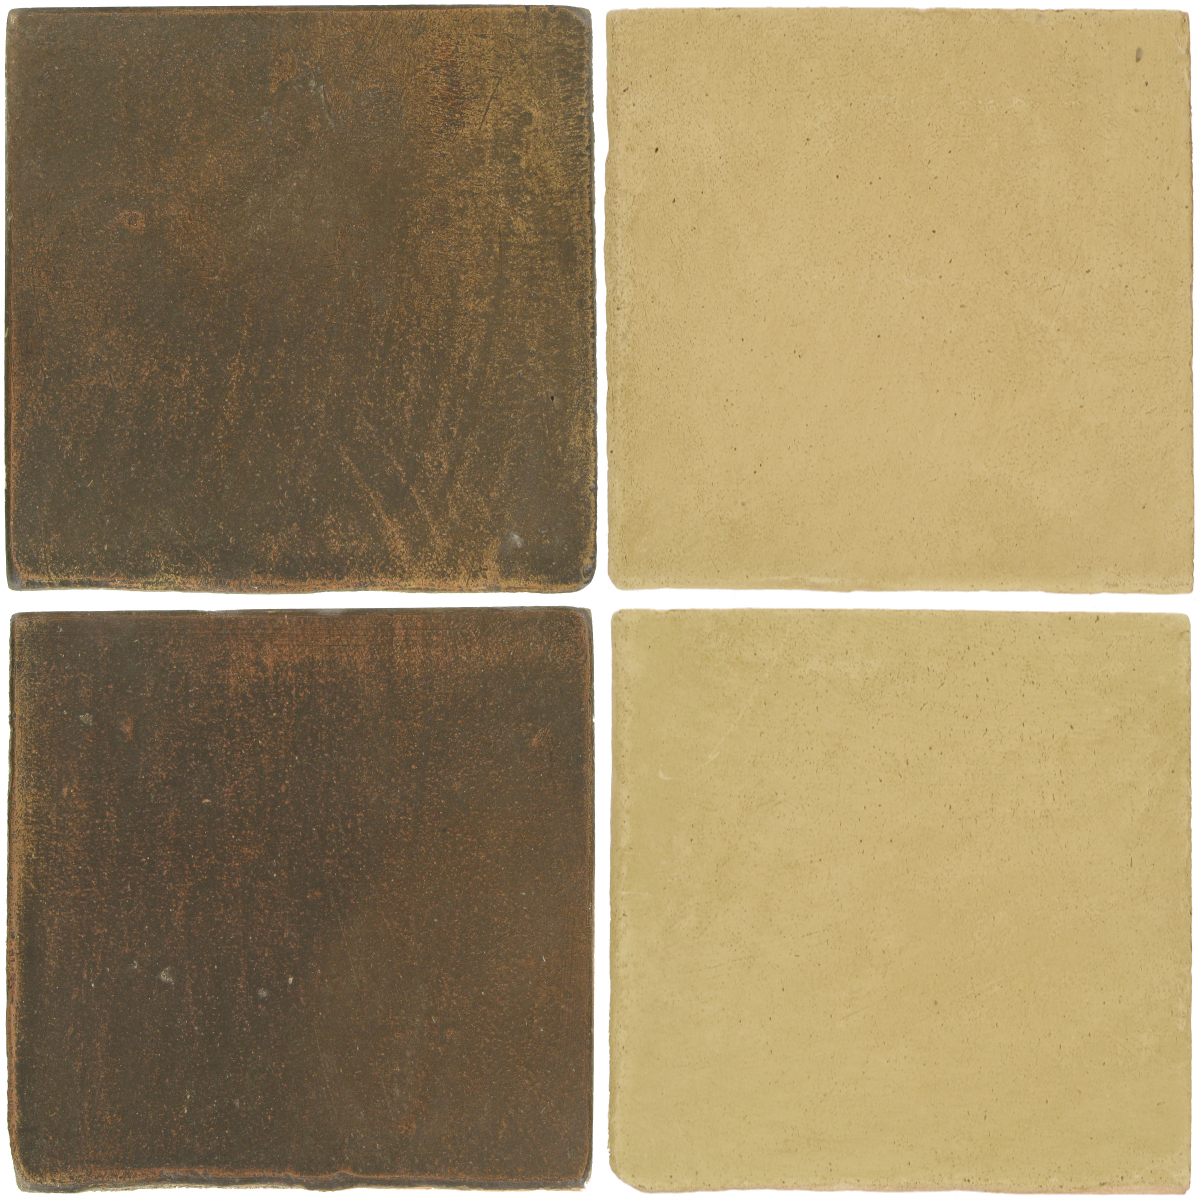 Pedralbes Antique Terracotta  2 Color Combinations  OHS-PSVN Verona Brown + OHS-PGGW Golden W.